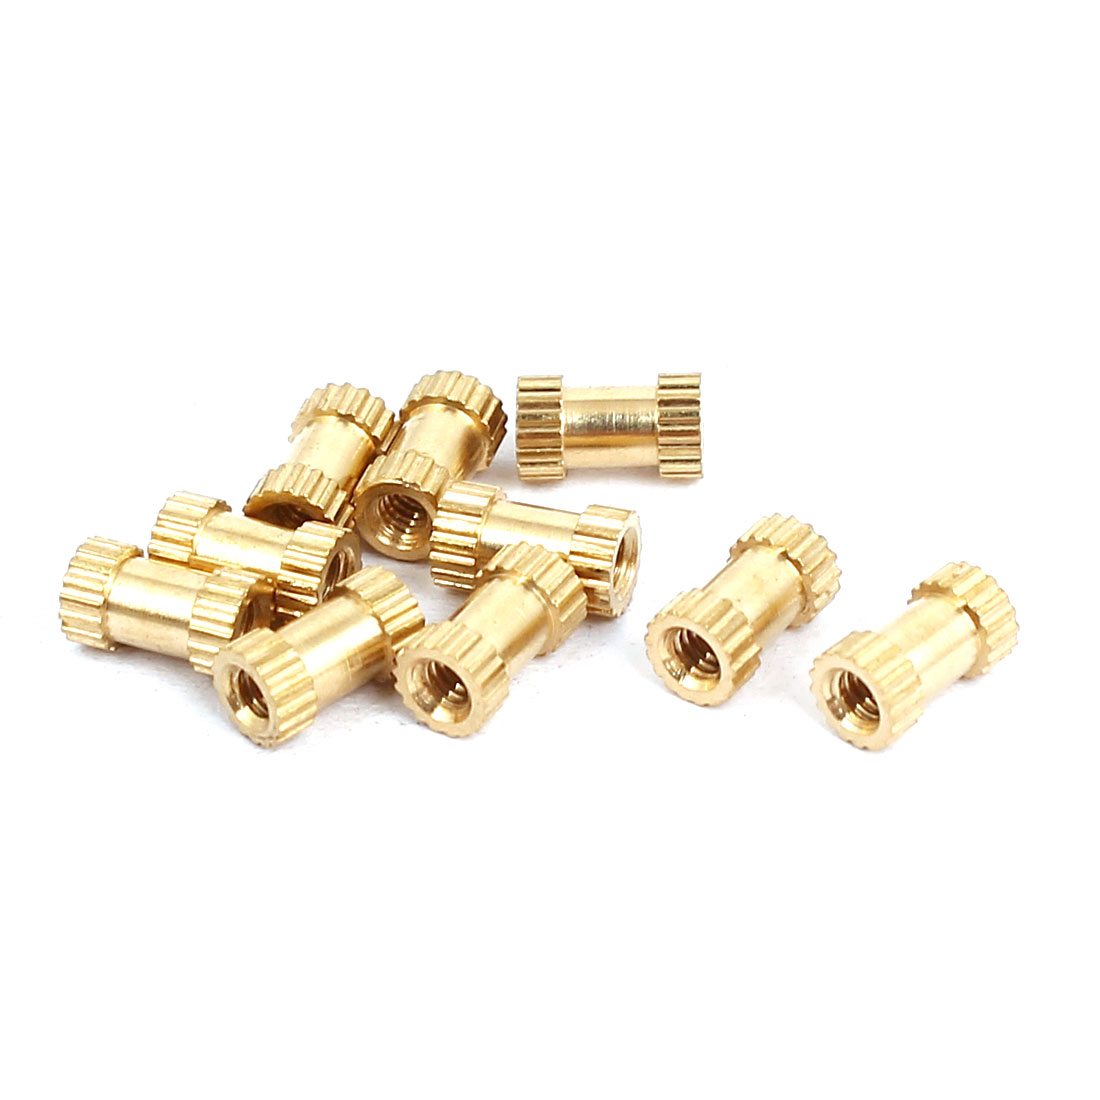 Unique Bargains M2x6mmx3.5mm Female Threaded Brass Knurled Insert Embedded Nuts Gold Tone 10pcs